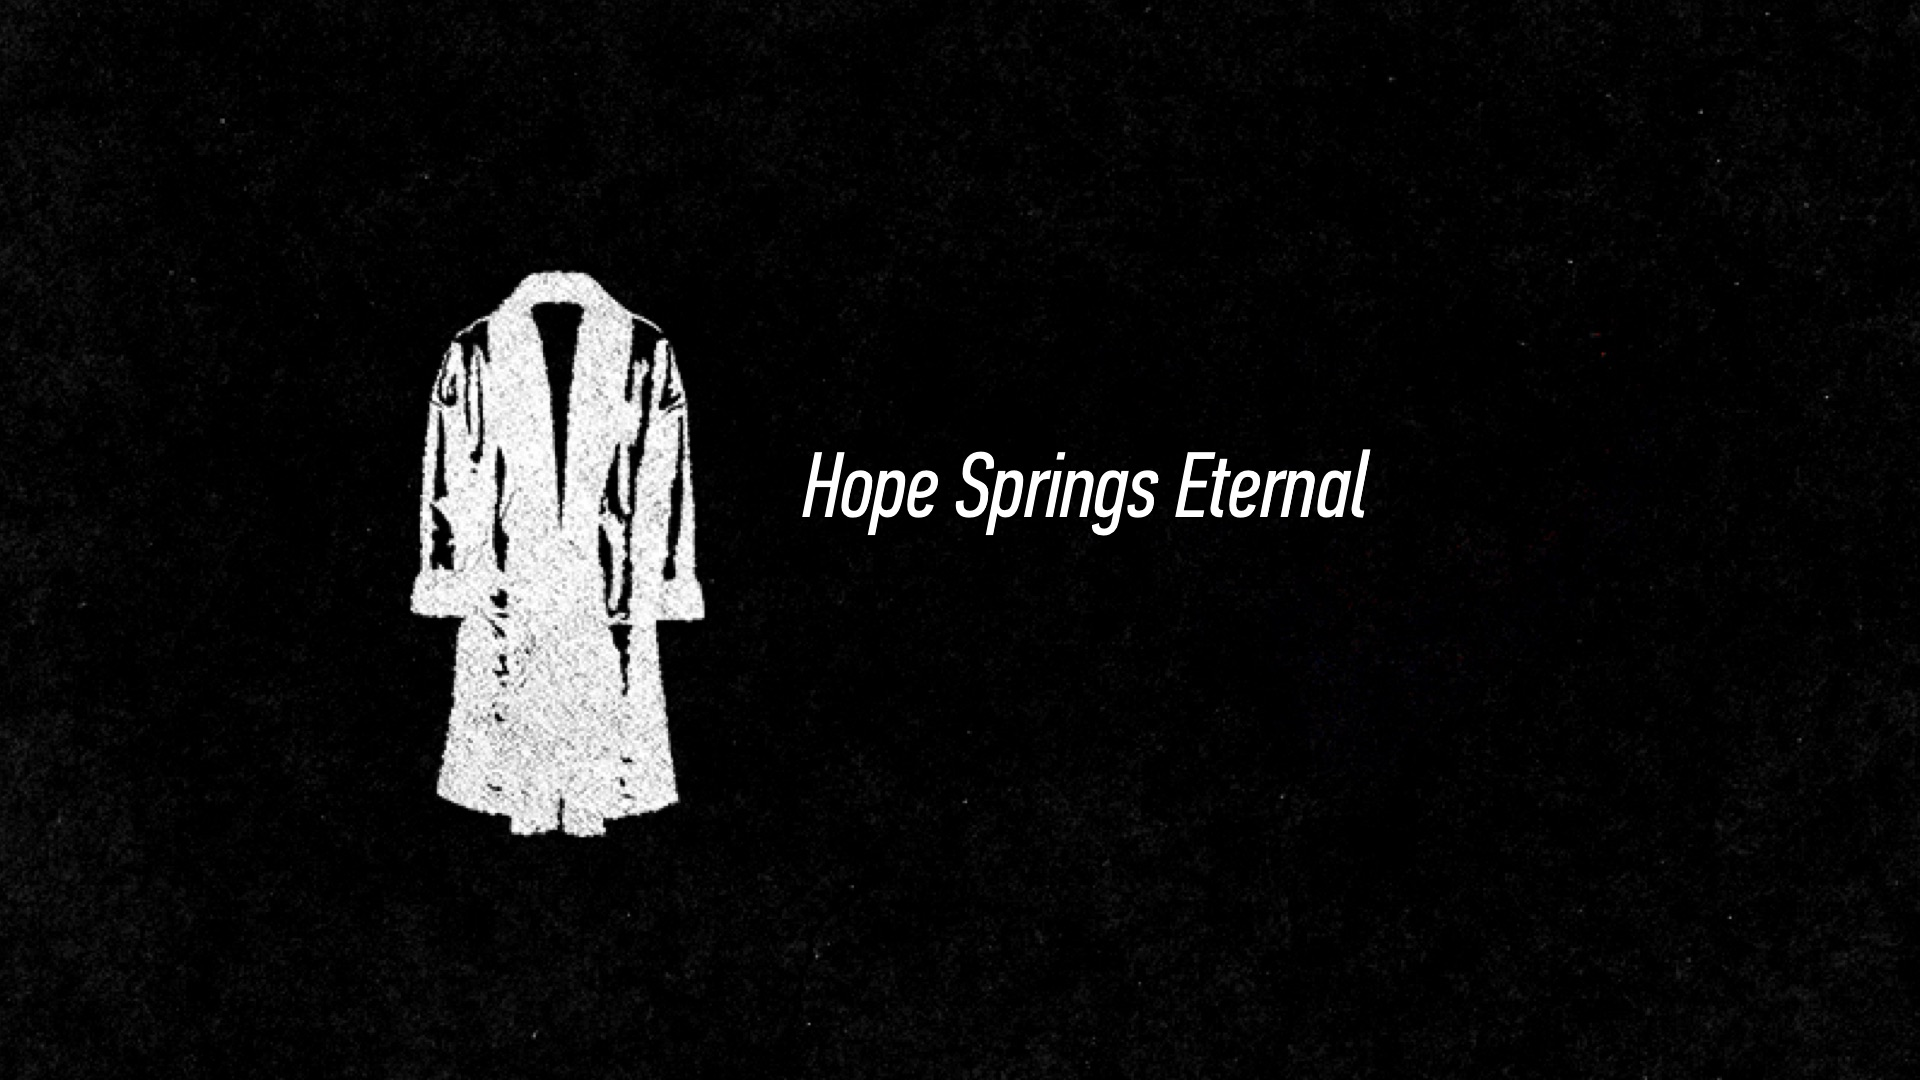 20160522 Hope Springs Eternal.jpg